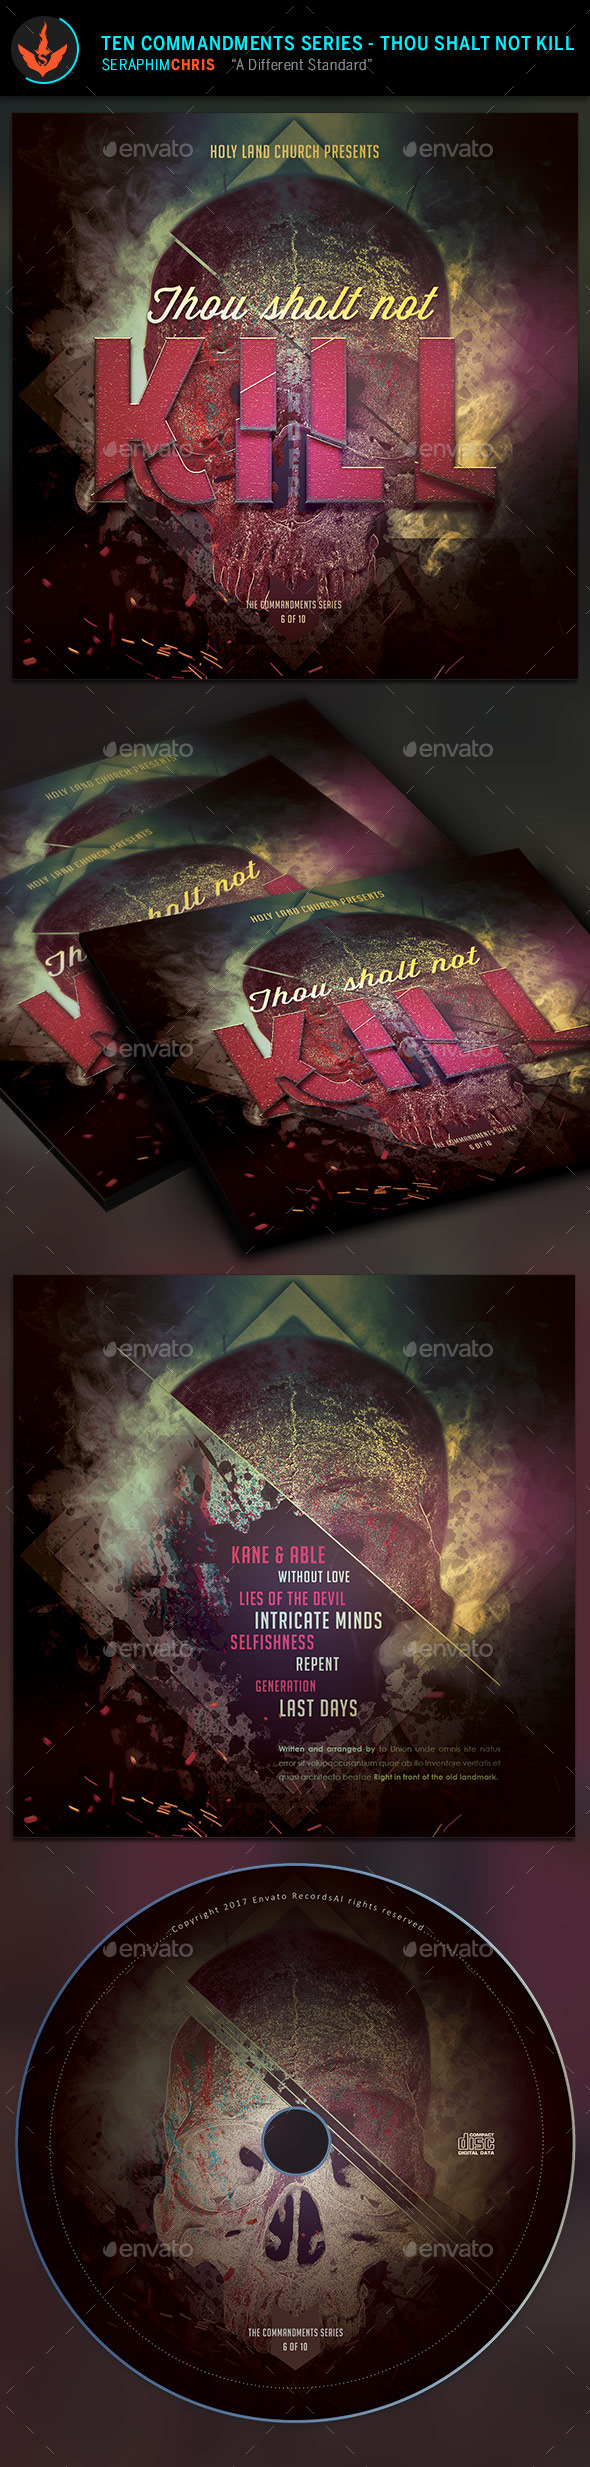 Thou Shalt Not Kill: CD Artwork Template - CD & DVD Artwork Print Templates